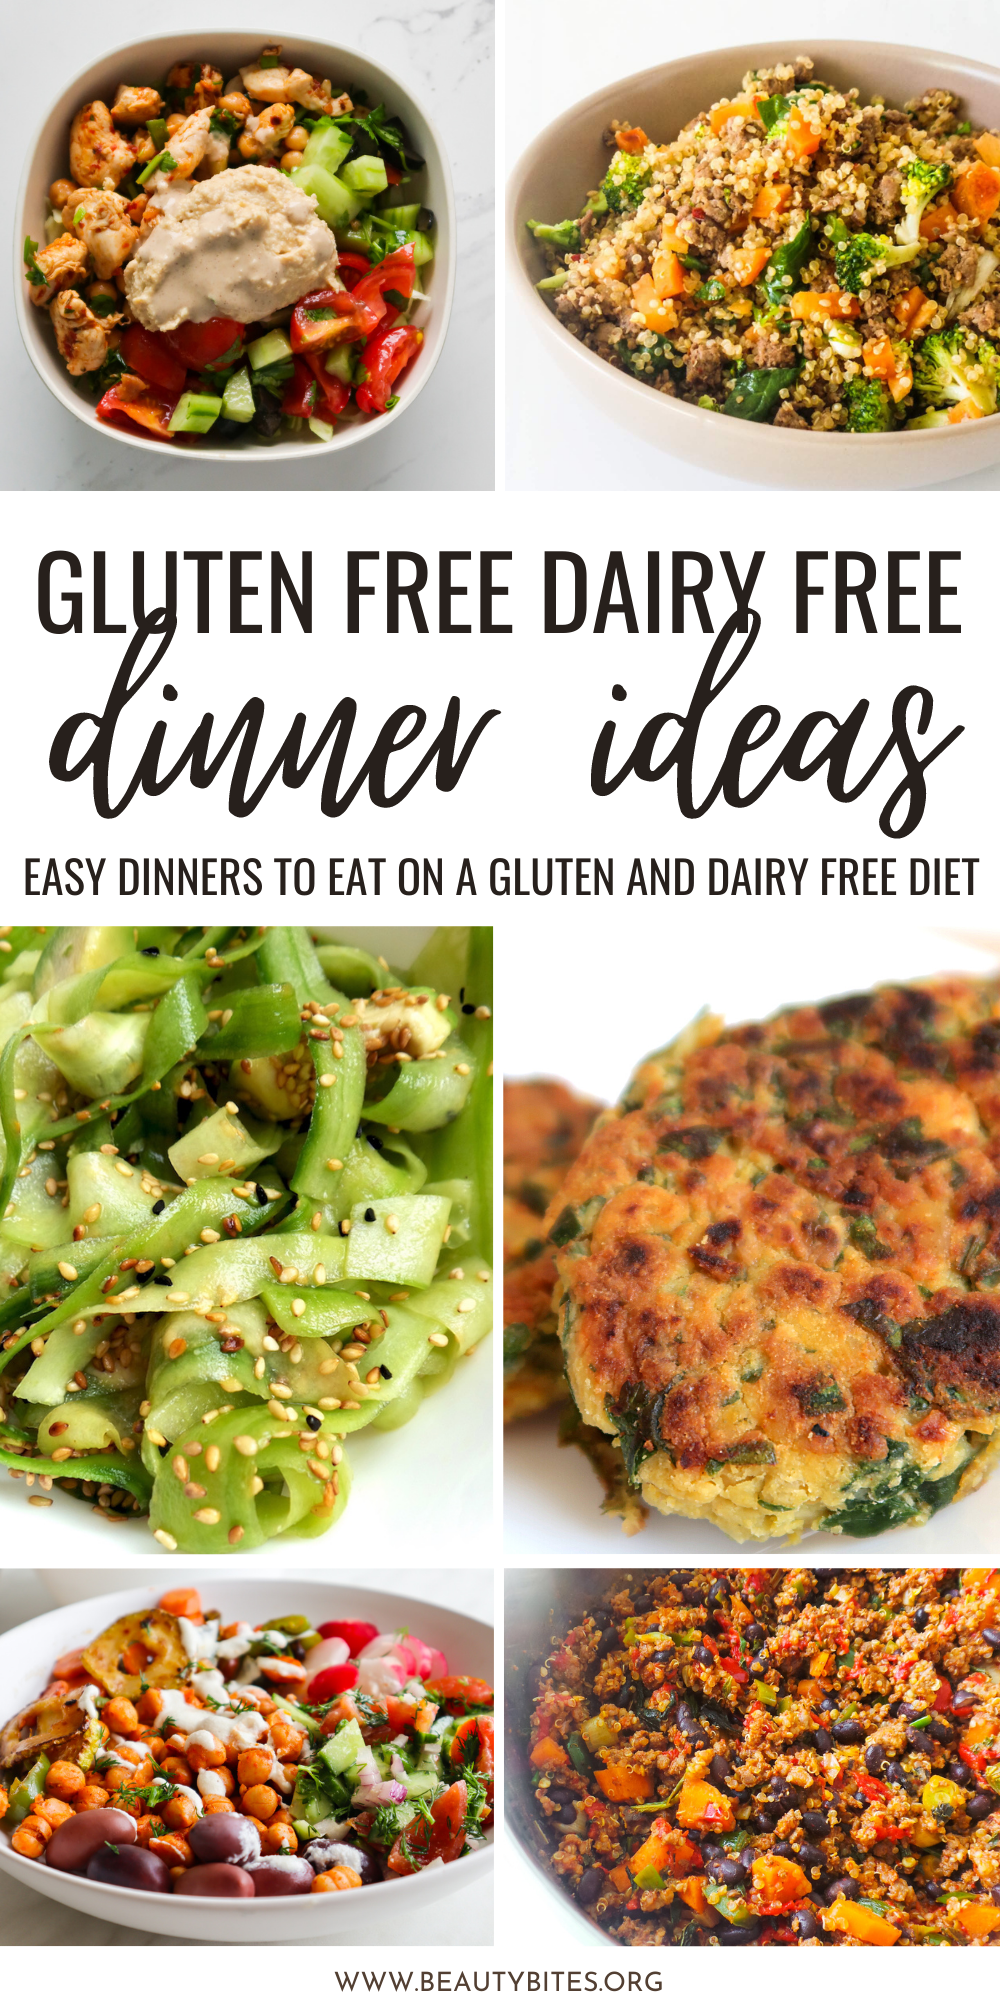 A collection of delicious quick and easy healthy dairy free gluten free dinner recipes to eat on a gluten free dairy free diet! You'll look forward to these flavorful healthy dinner ideas when you put them on your weekly meal plan.